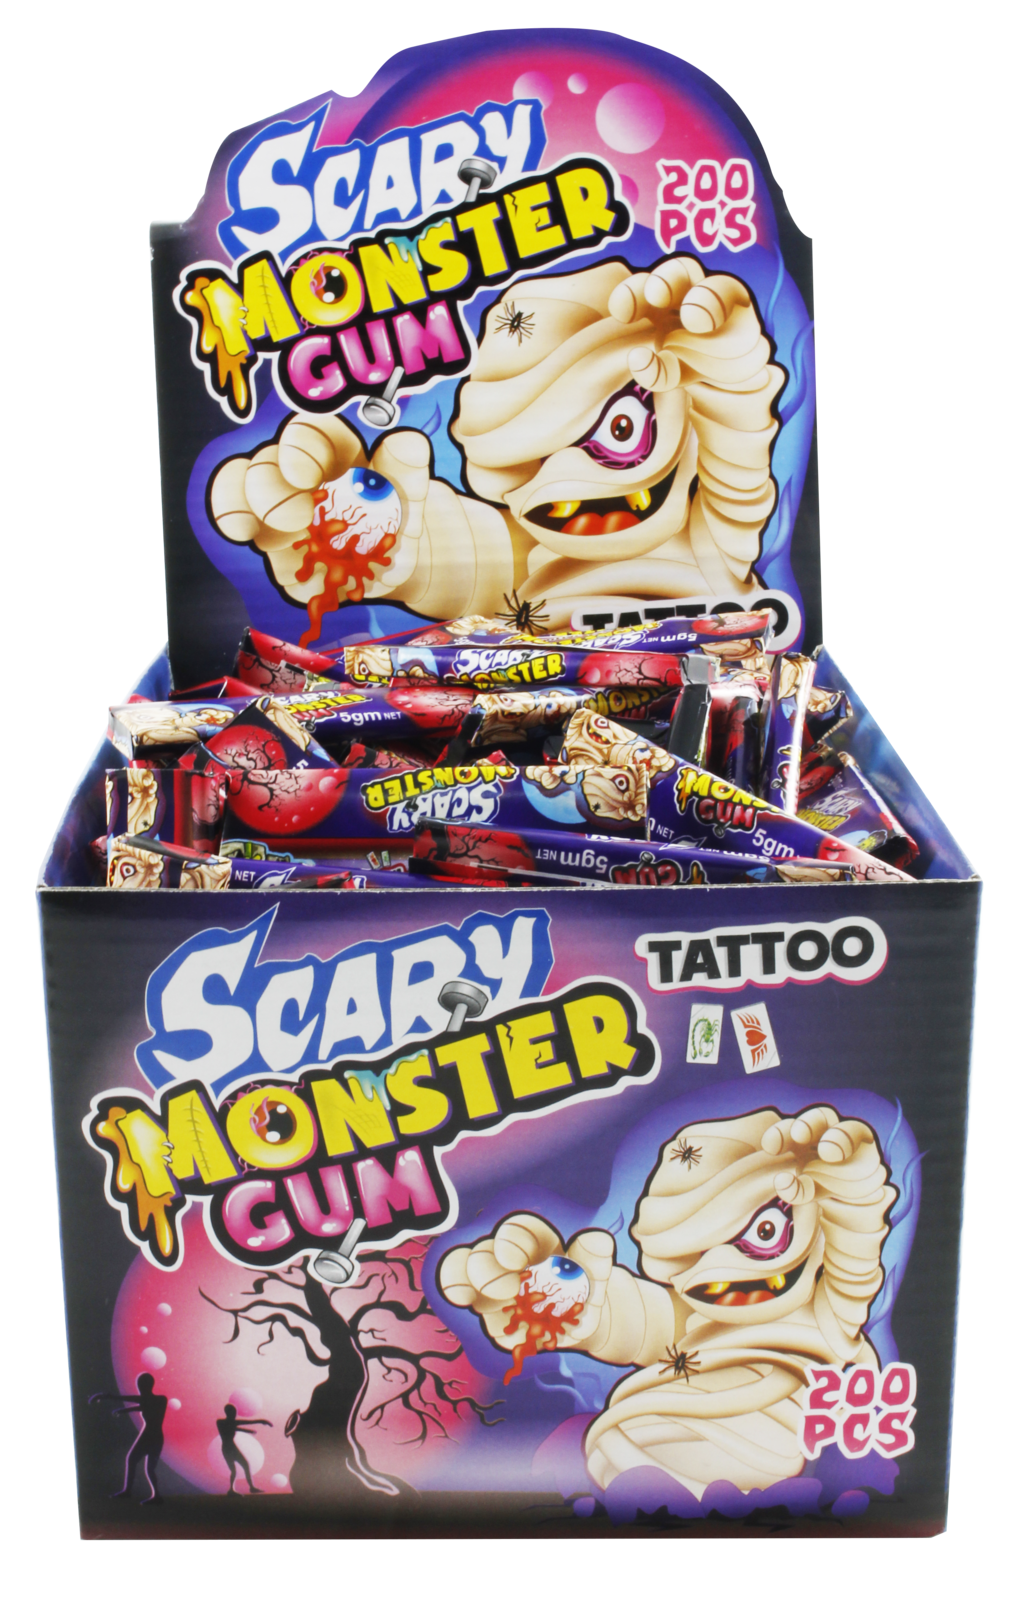 HALLOWEEN SCARY MONSTER GUM & TATTOOS - 200 PIECES